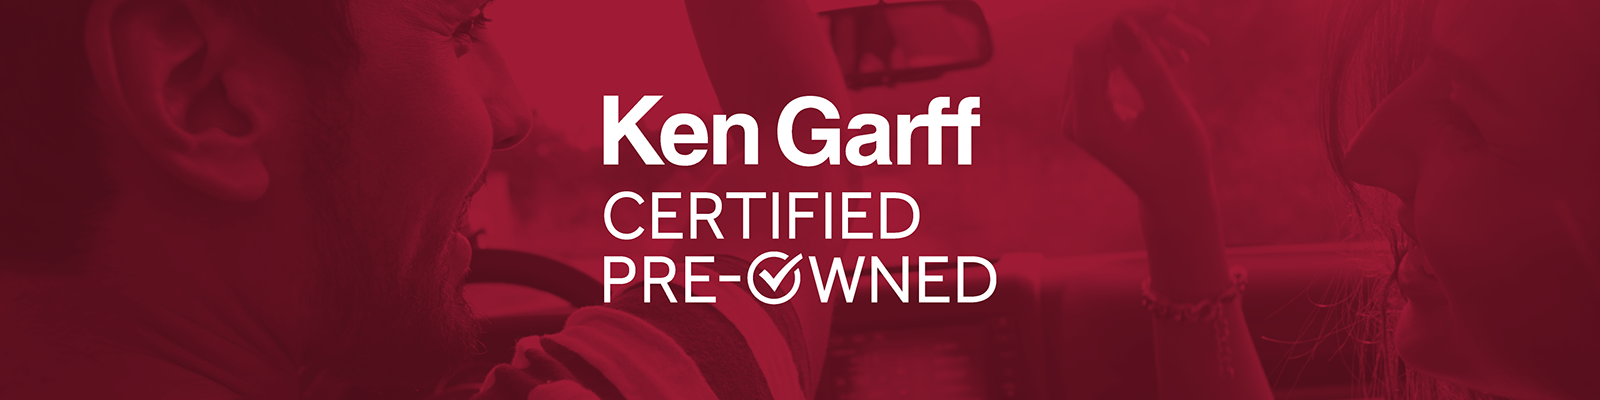 Ken Garff Mercedes >> Ken Garff Certified Pre-Owned | Mercedes-Benz of Salt Lake